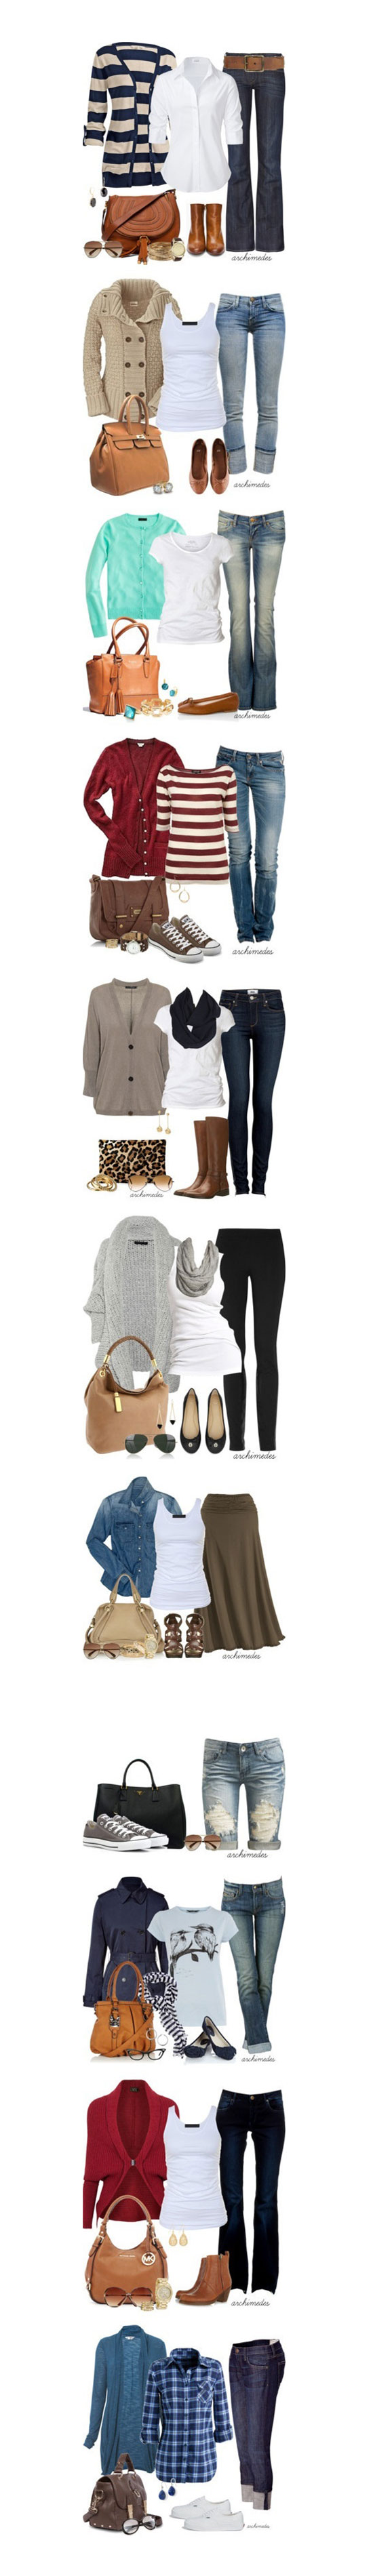 15-Casual-Winter-Fashion-Trends-Looks-2013-For-Girls-Women-1